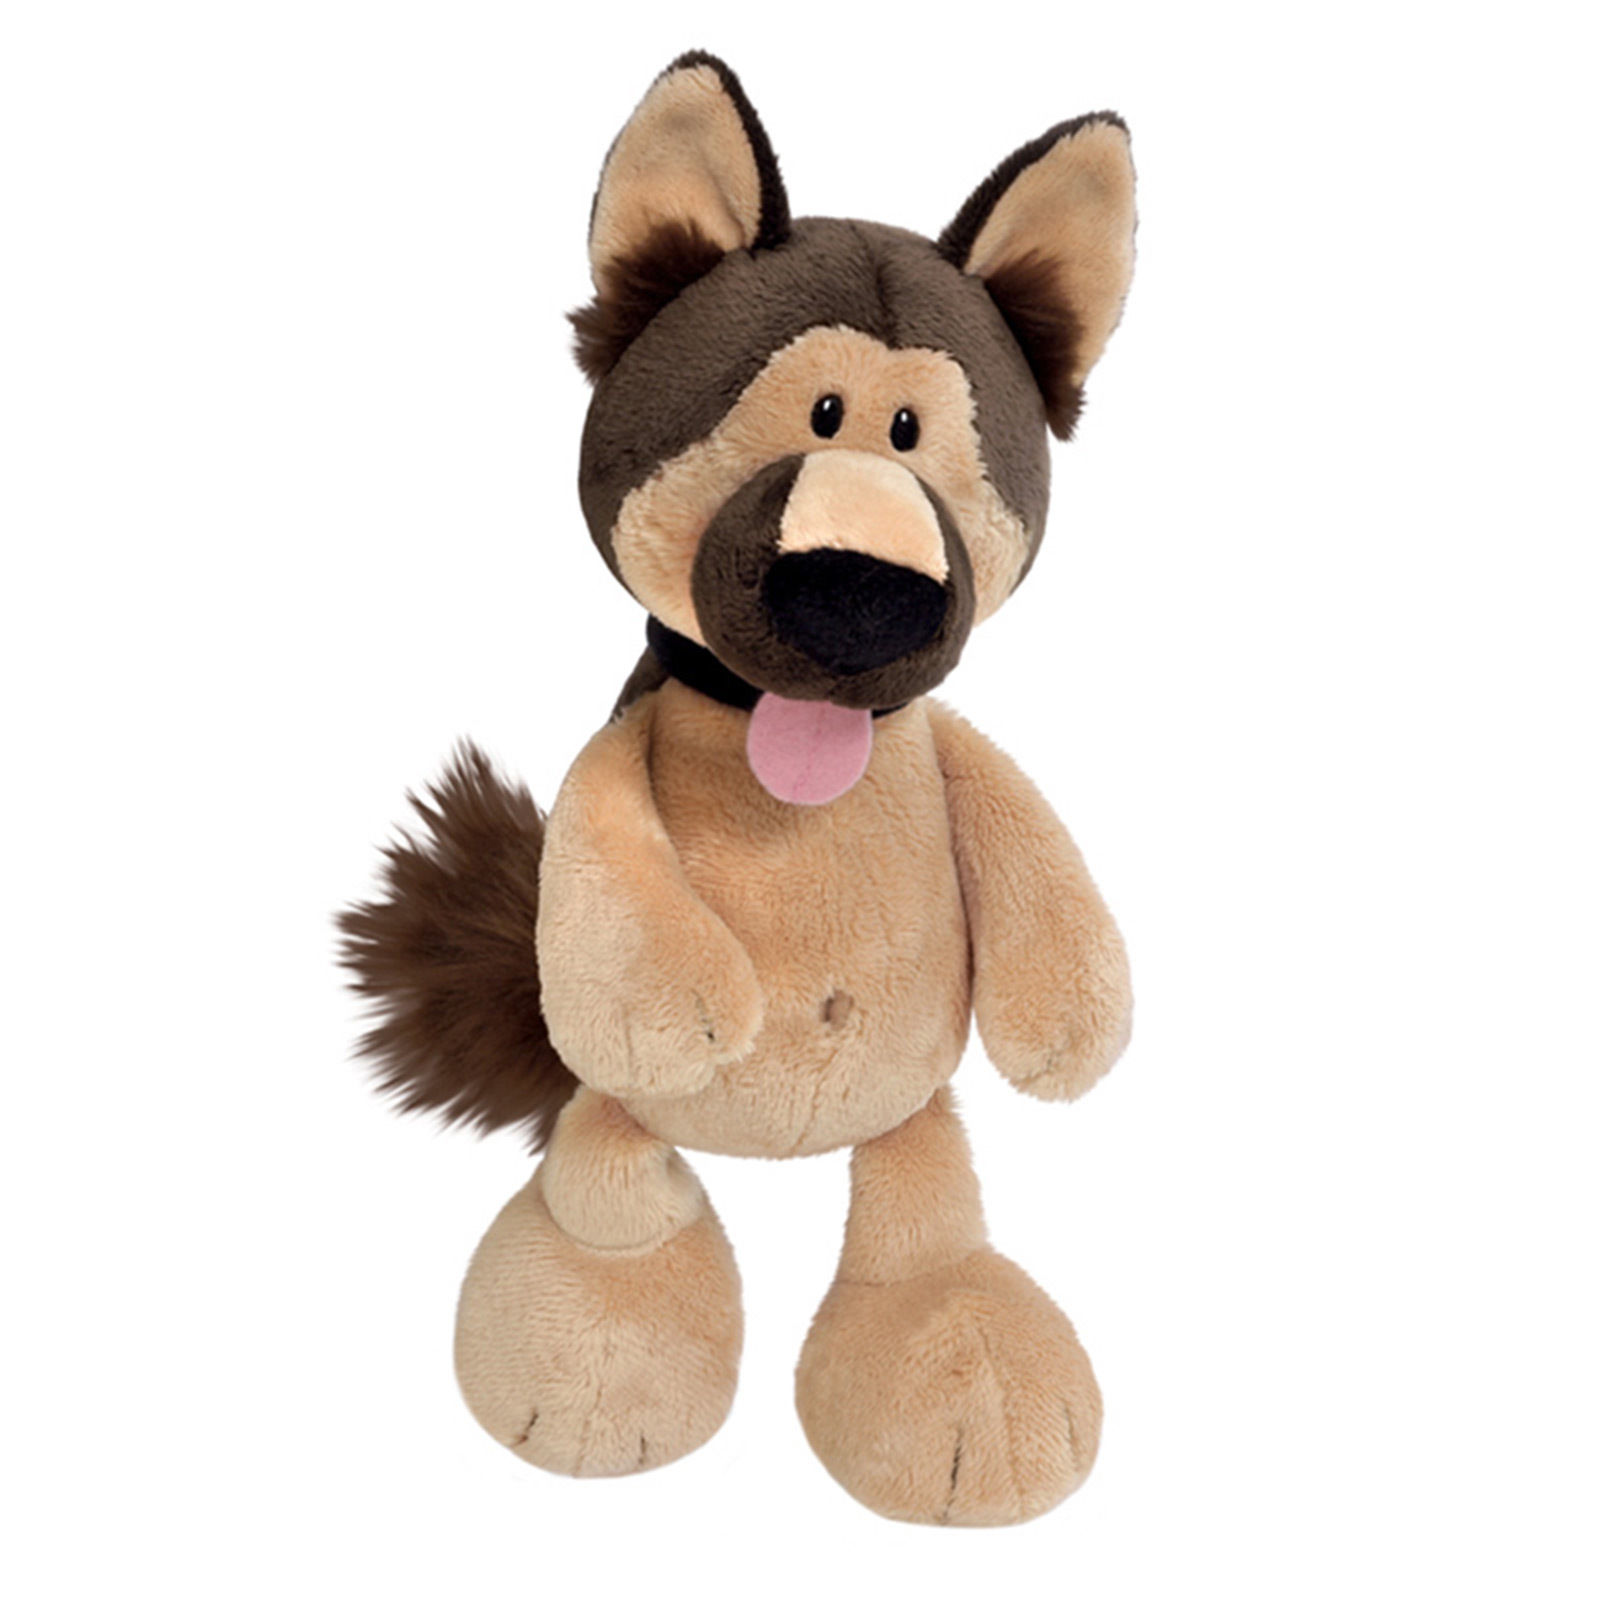 Cuddly German Shepherd Dog ?- Fully Customisable Plush